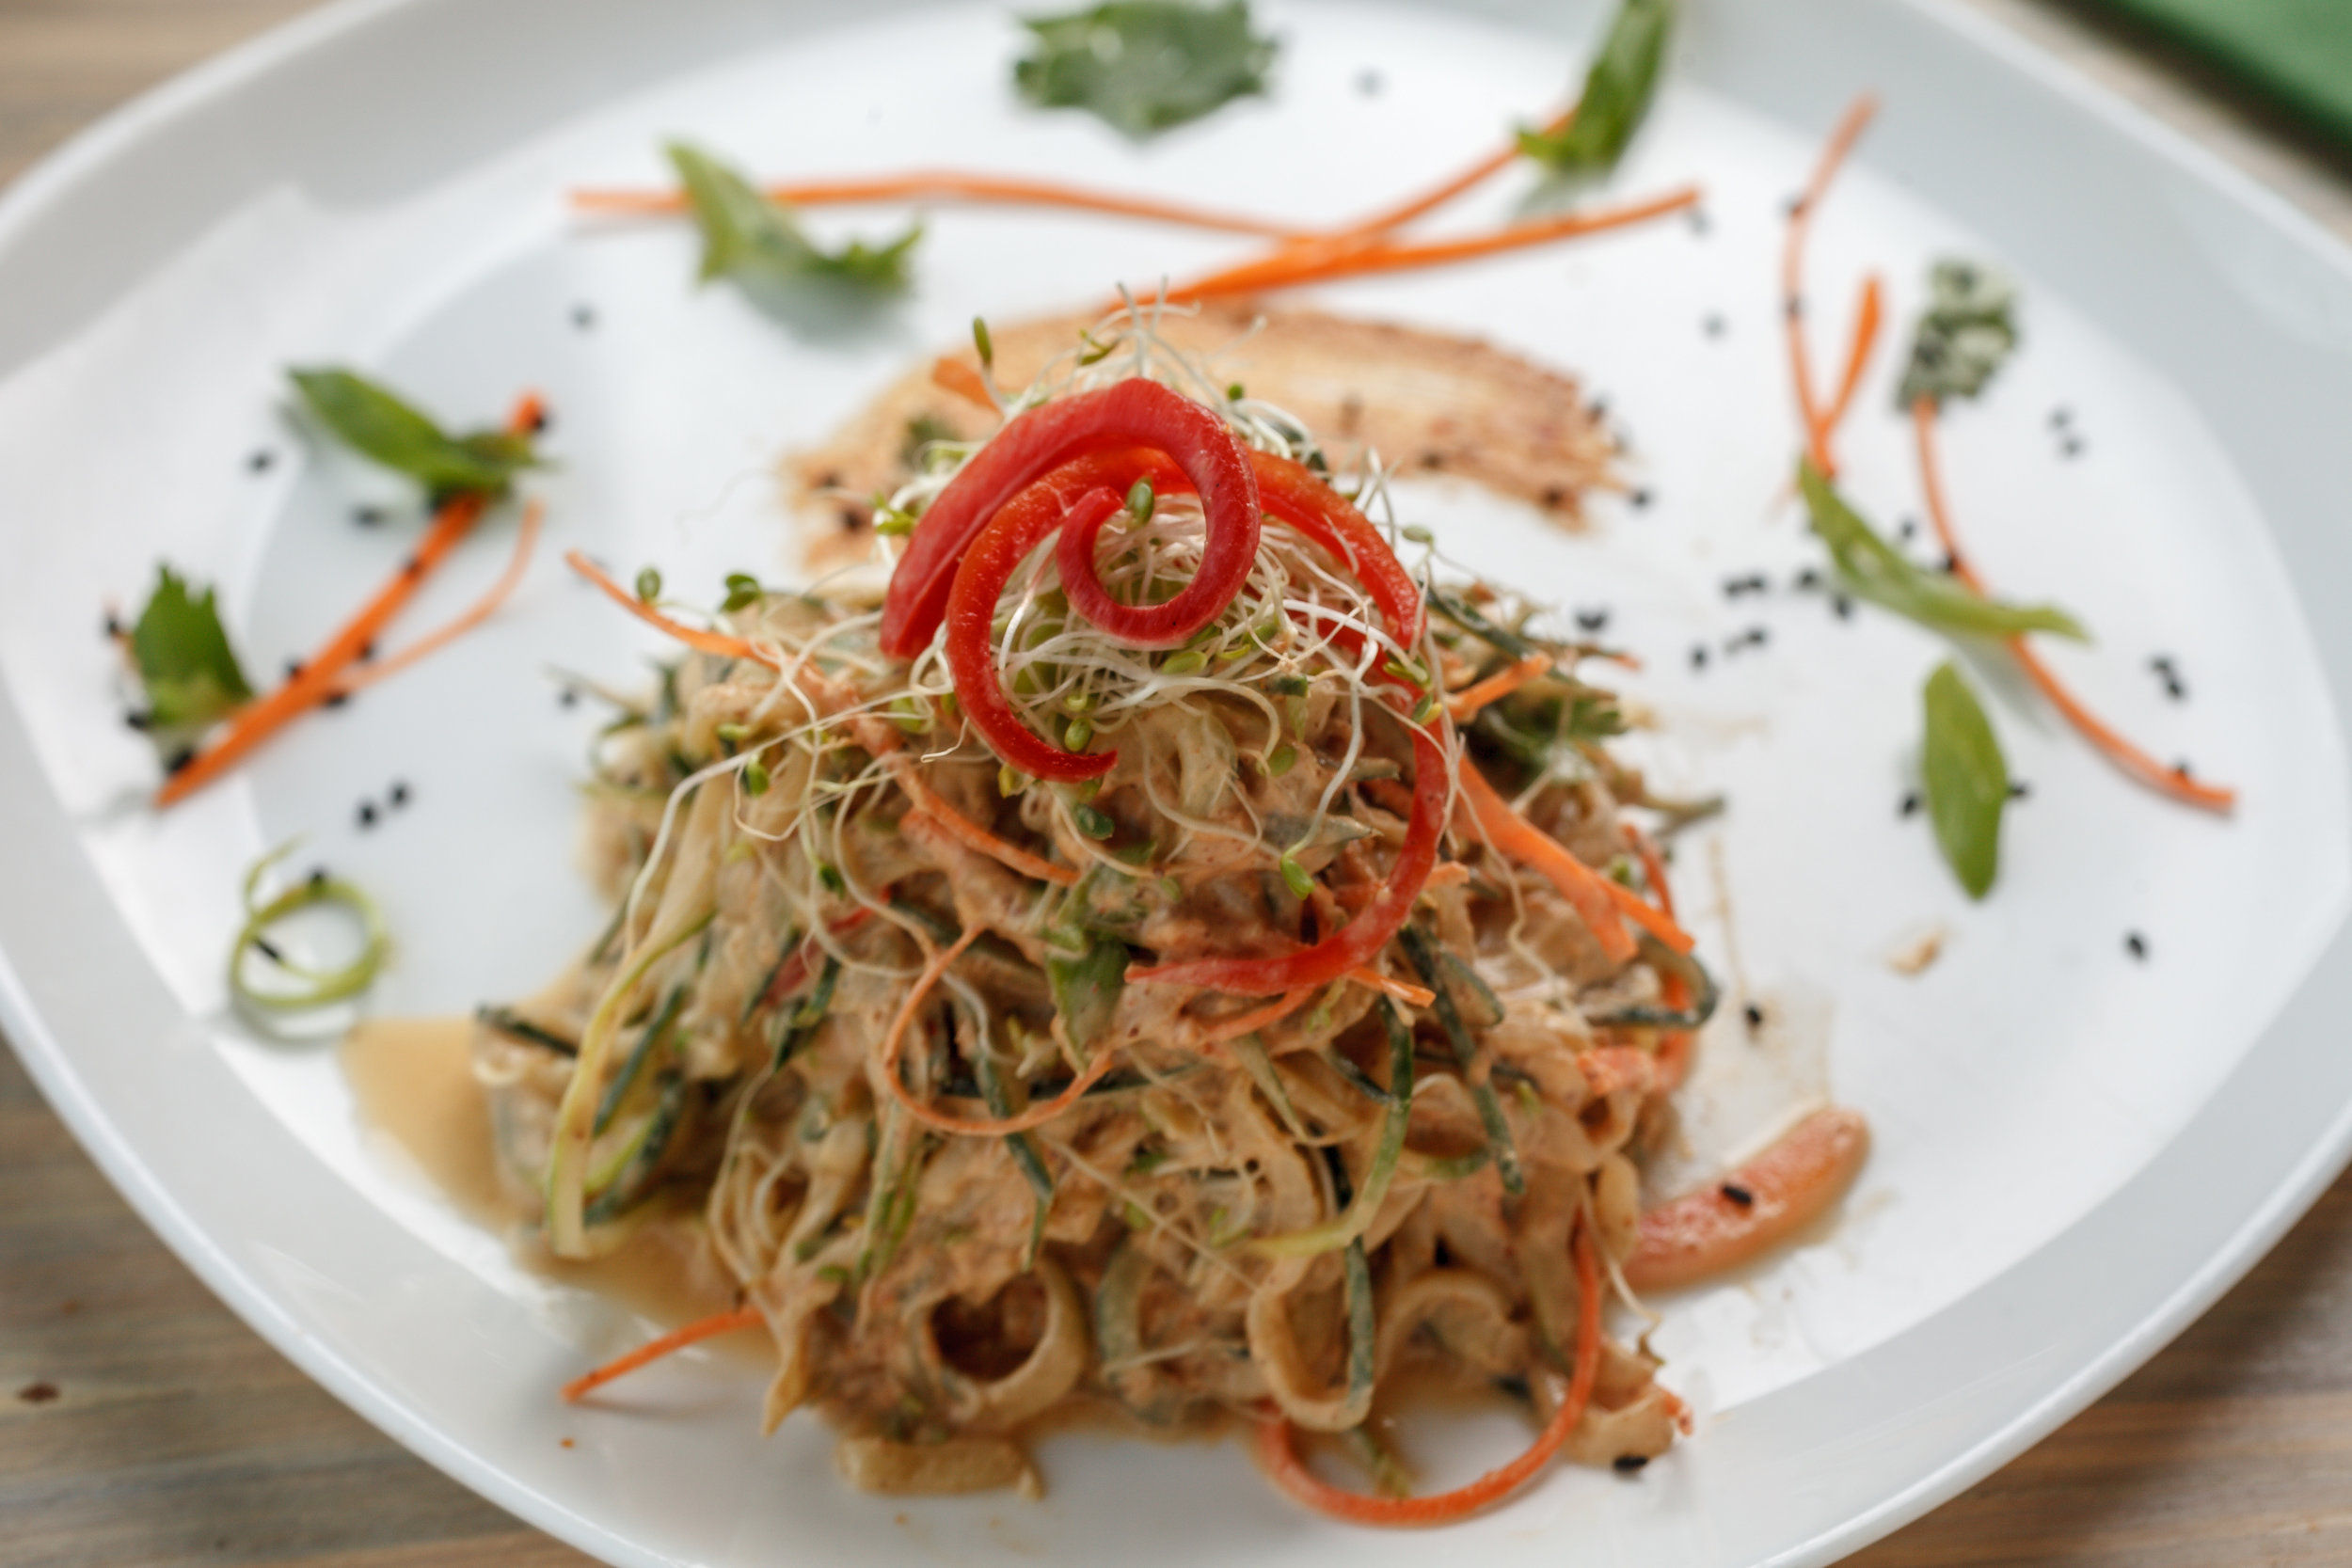 At New Orleans-based Seed, Edgar Cooper is serving vegan dishes with southern flare. The one pictured here is a Raw Pad Thai, made with spiralized cucumber noodle and an almond butter-tamarind sauce. Photo from  Seed